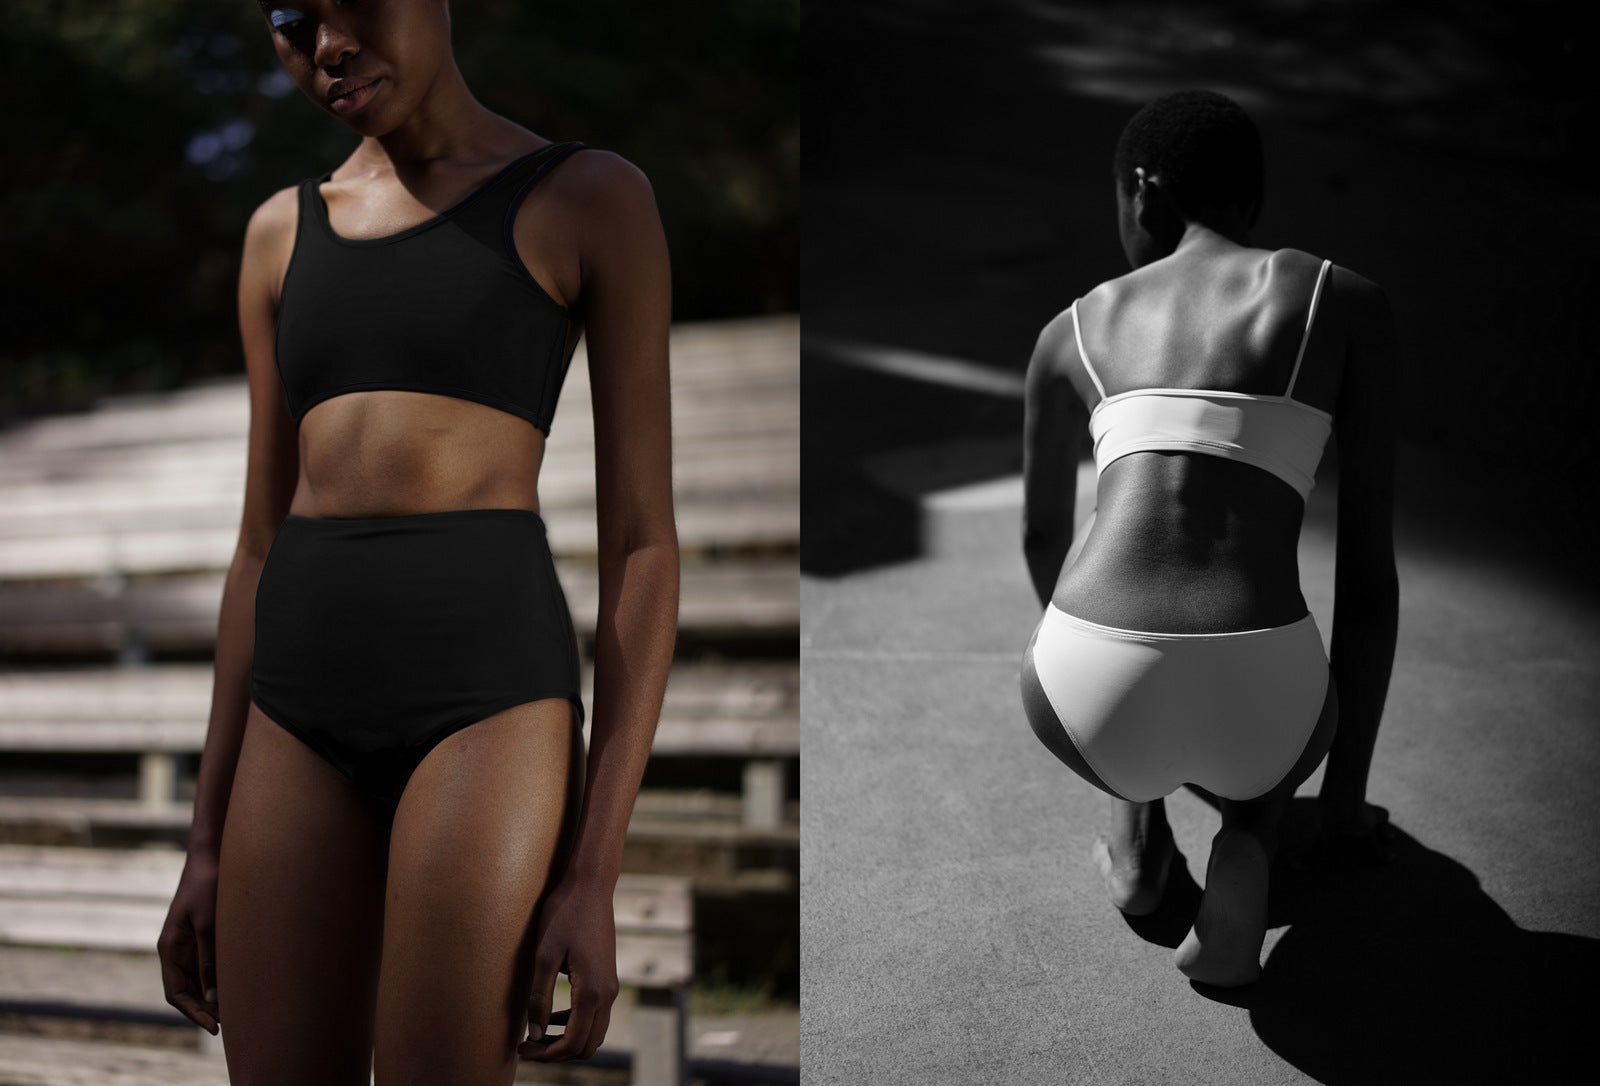 06d80d965f1b92 NU SWIM / A small but perfectly curated selection of swim wear in muted  colors only. Tops and bottoms available after the mix & match concept.